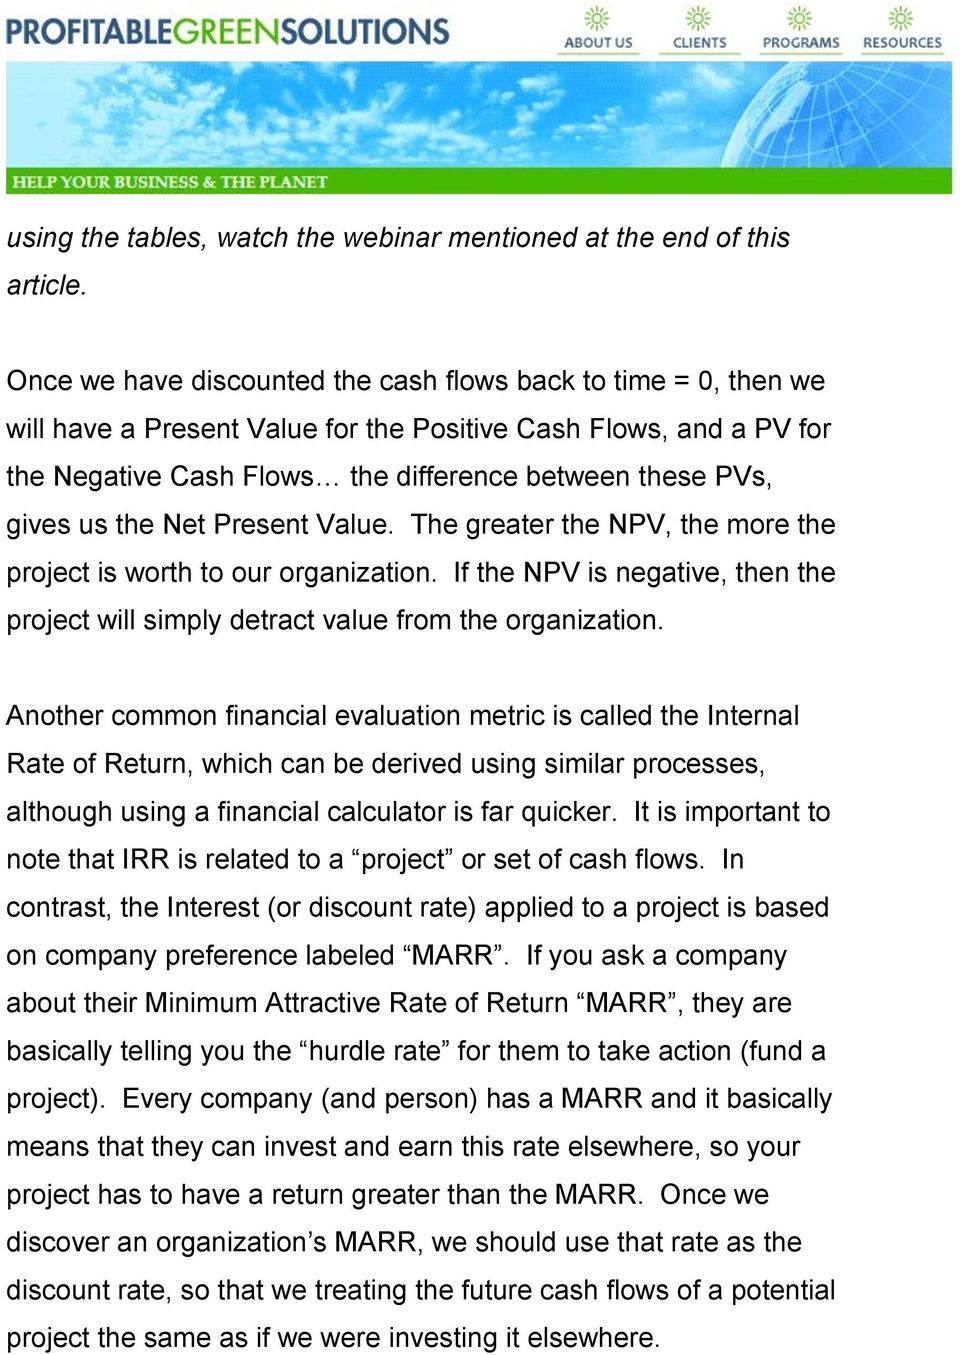 the Net Present Value. The greater the NPV, the more the project is worth to our organization. If the NPV is negative, then the project will simply detract value from the organization.